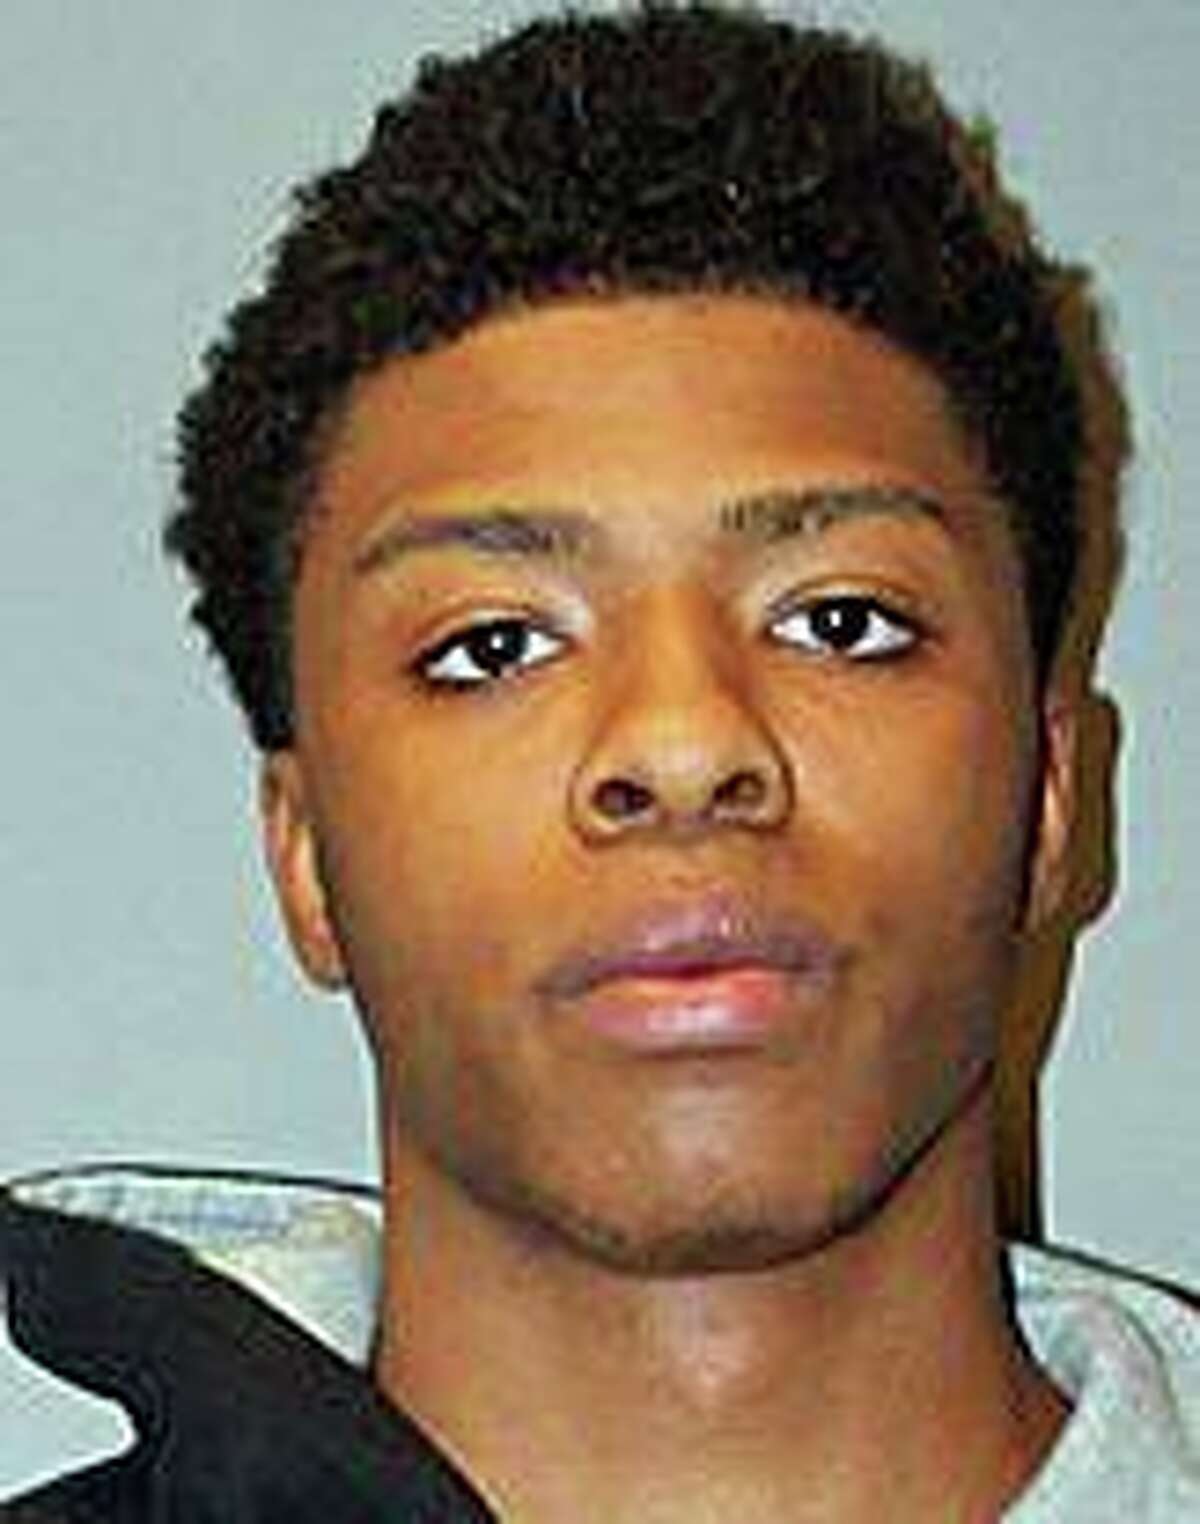 A 19-year-old Bridgeport man has been arrested after allegedly firing several gun shots on Halloween and possessing 20 pounds of marijuana, police said. Tyrese Pridgen was arrested on Wednesday, Nov. 11, 2020 on a court warrant at Norman Street in Bridgeport, said Lt. Frank Eannotti.